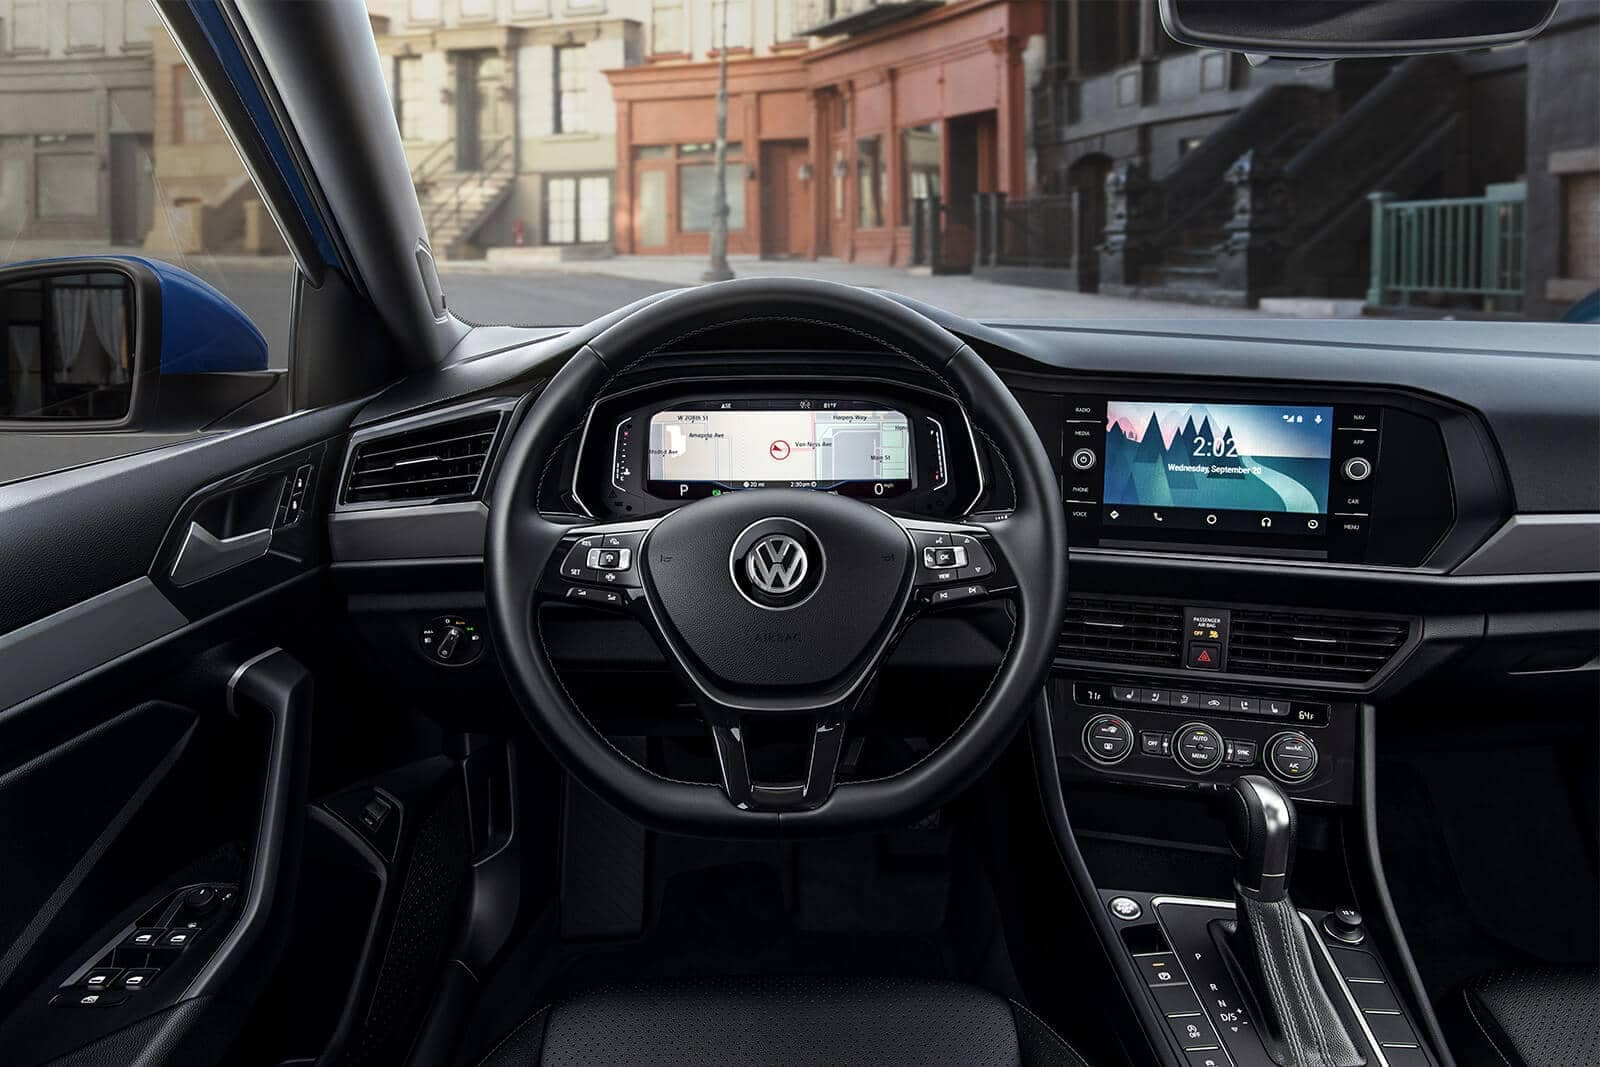 2019-Volkswagen-Jetta-SEL-Premium-titan-black-leather-interior-dashboard